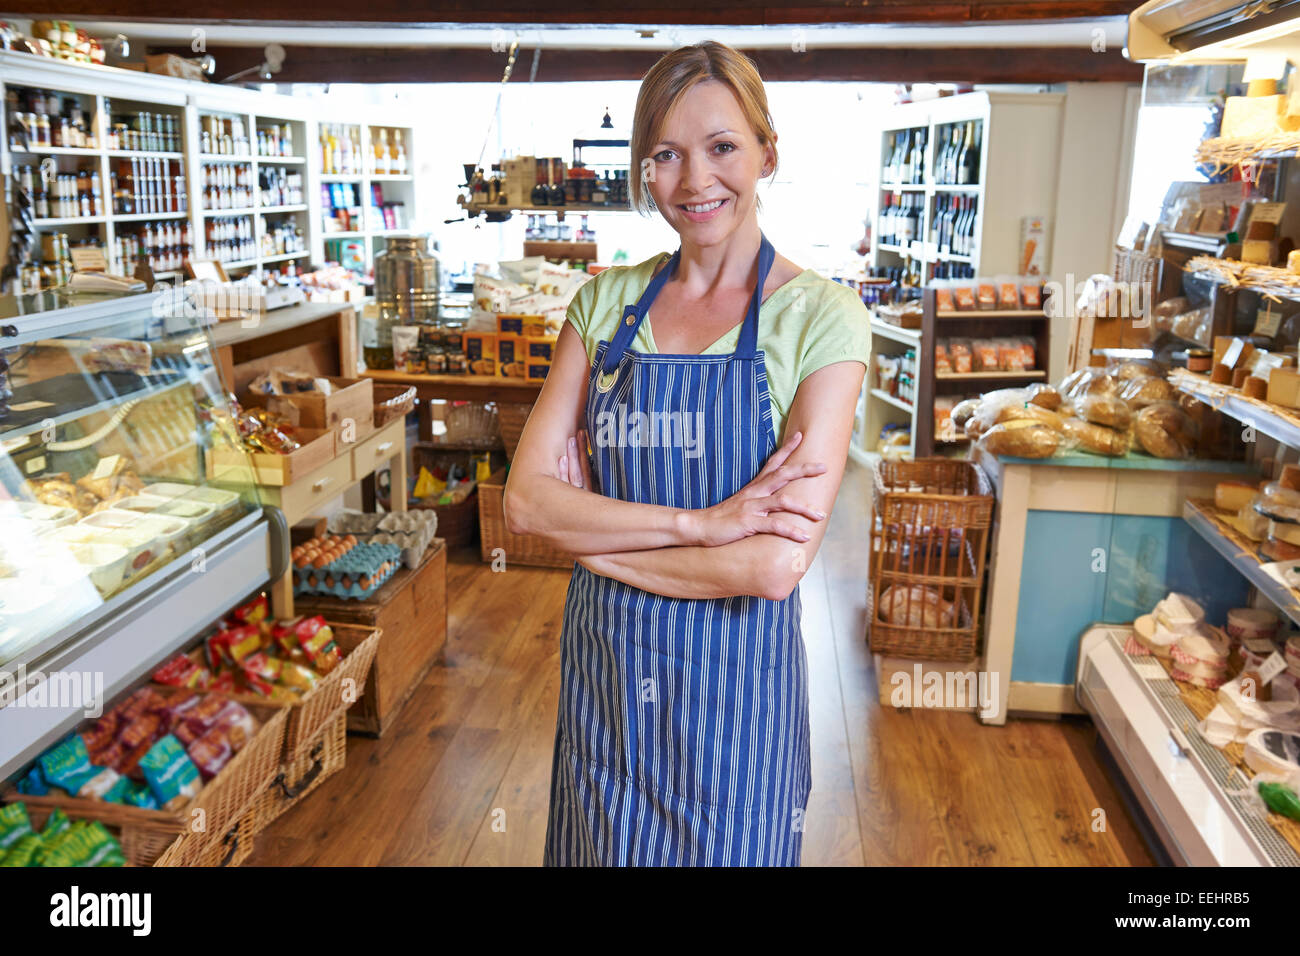 Owner Of Delicatessen Standing In Shop - Stock Image